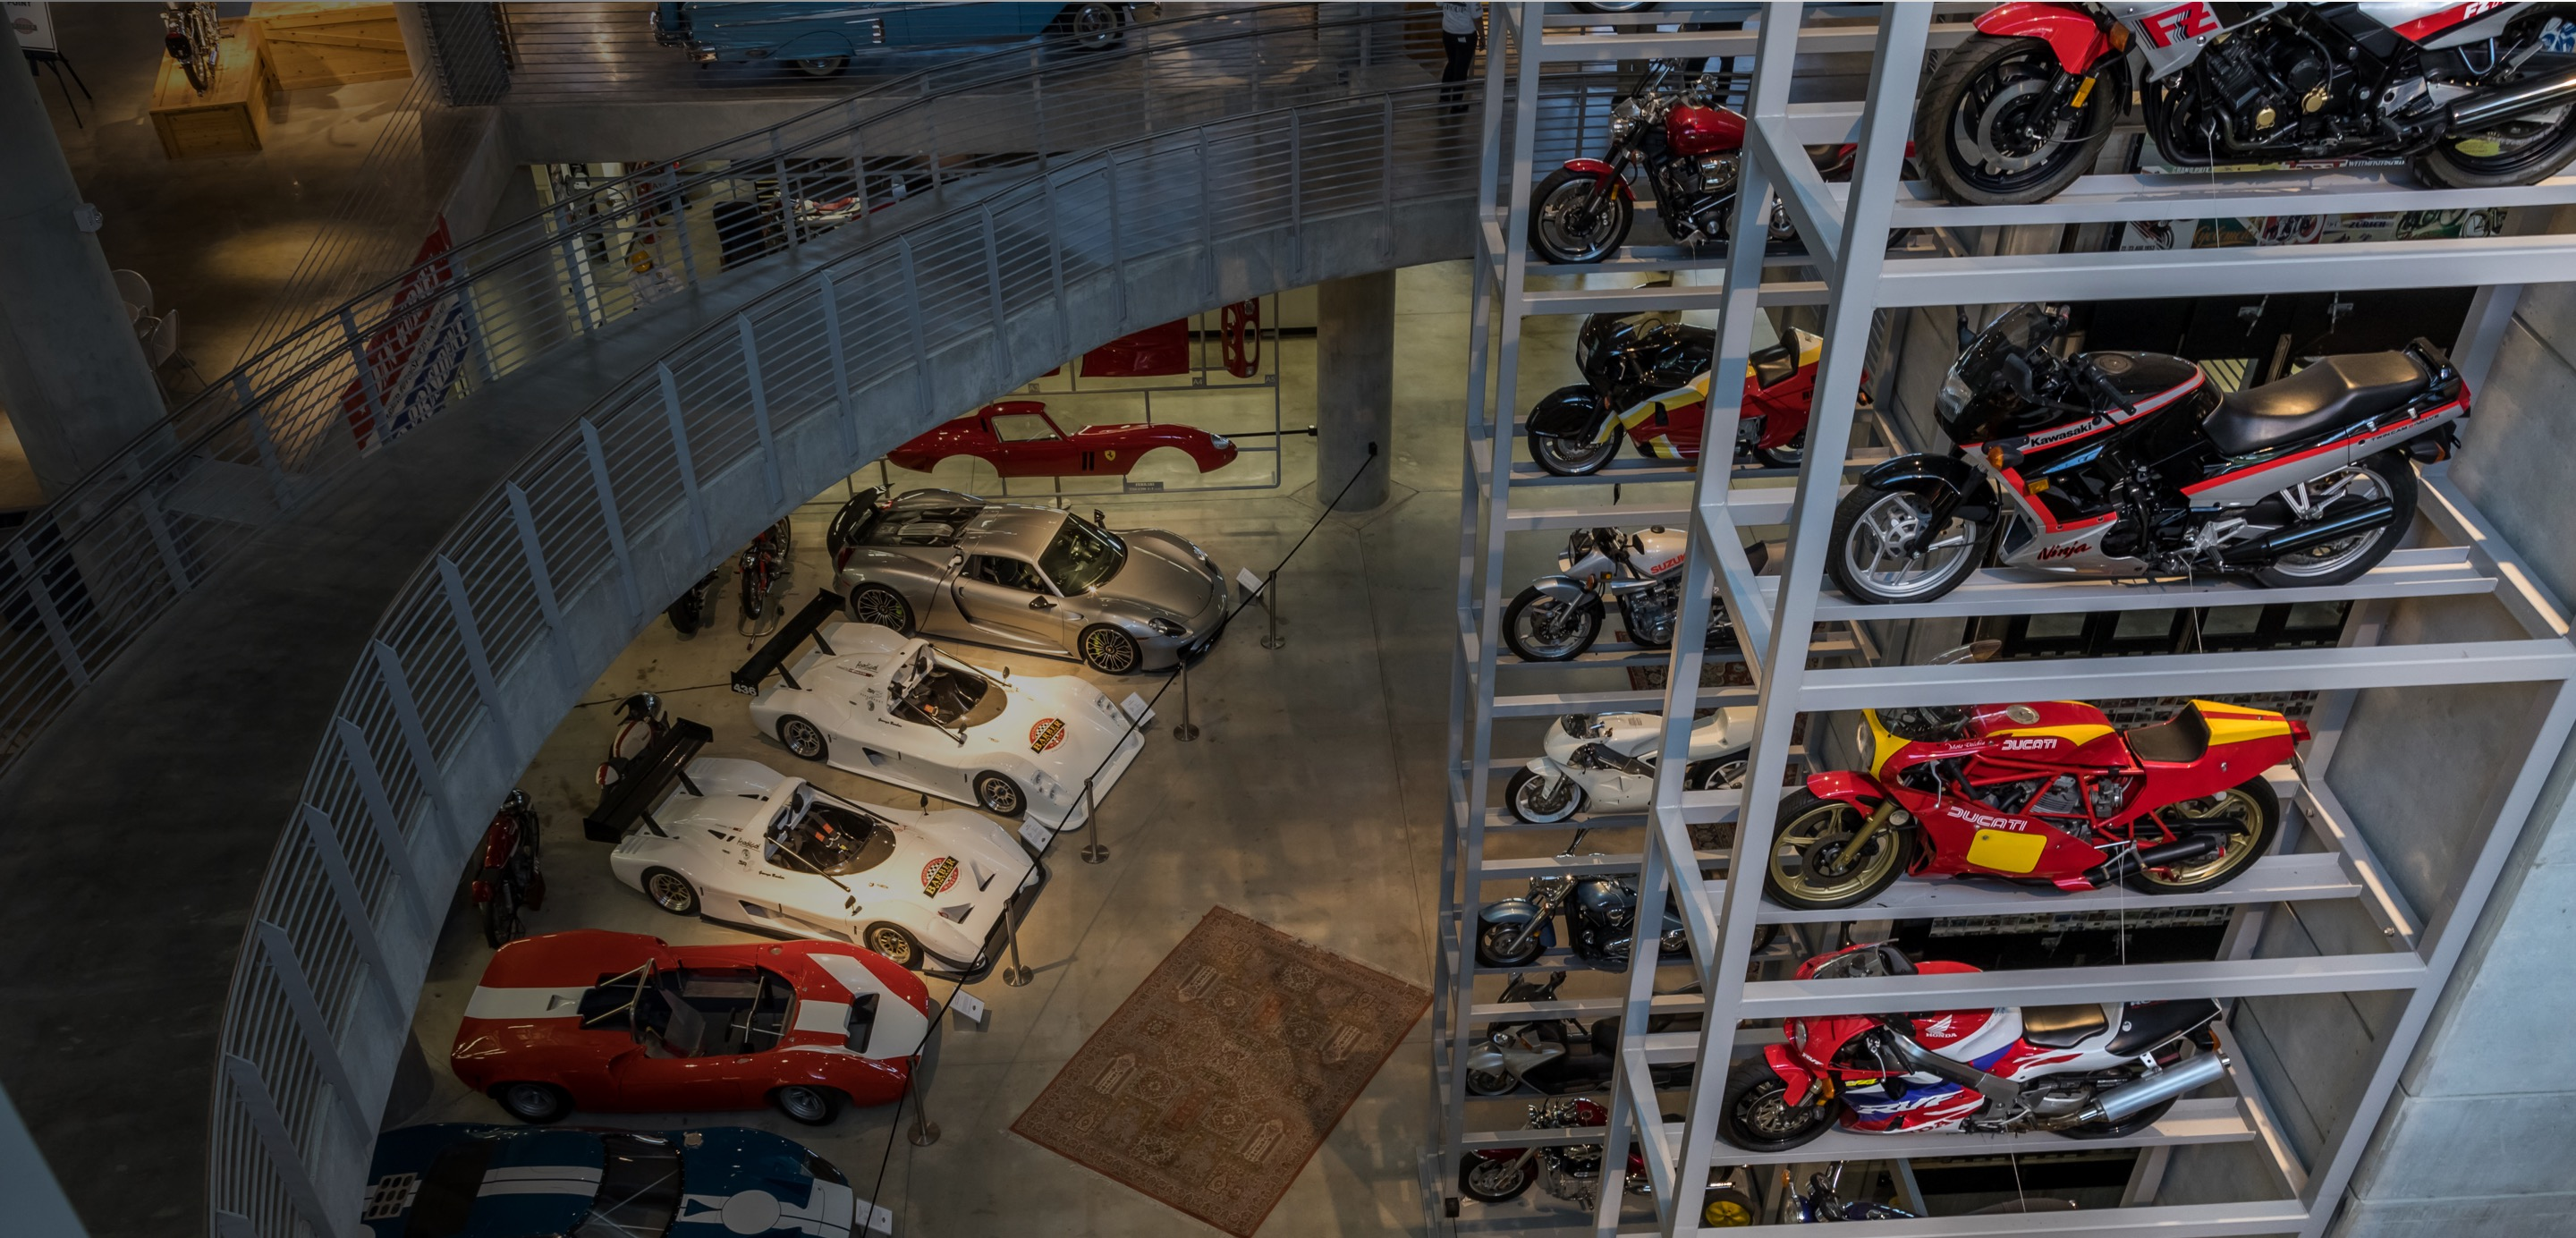 Bird's eye view of vintage race cars and motorcycles inside the Barber Vintage Motorsports Museum